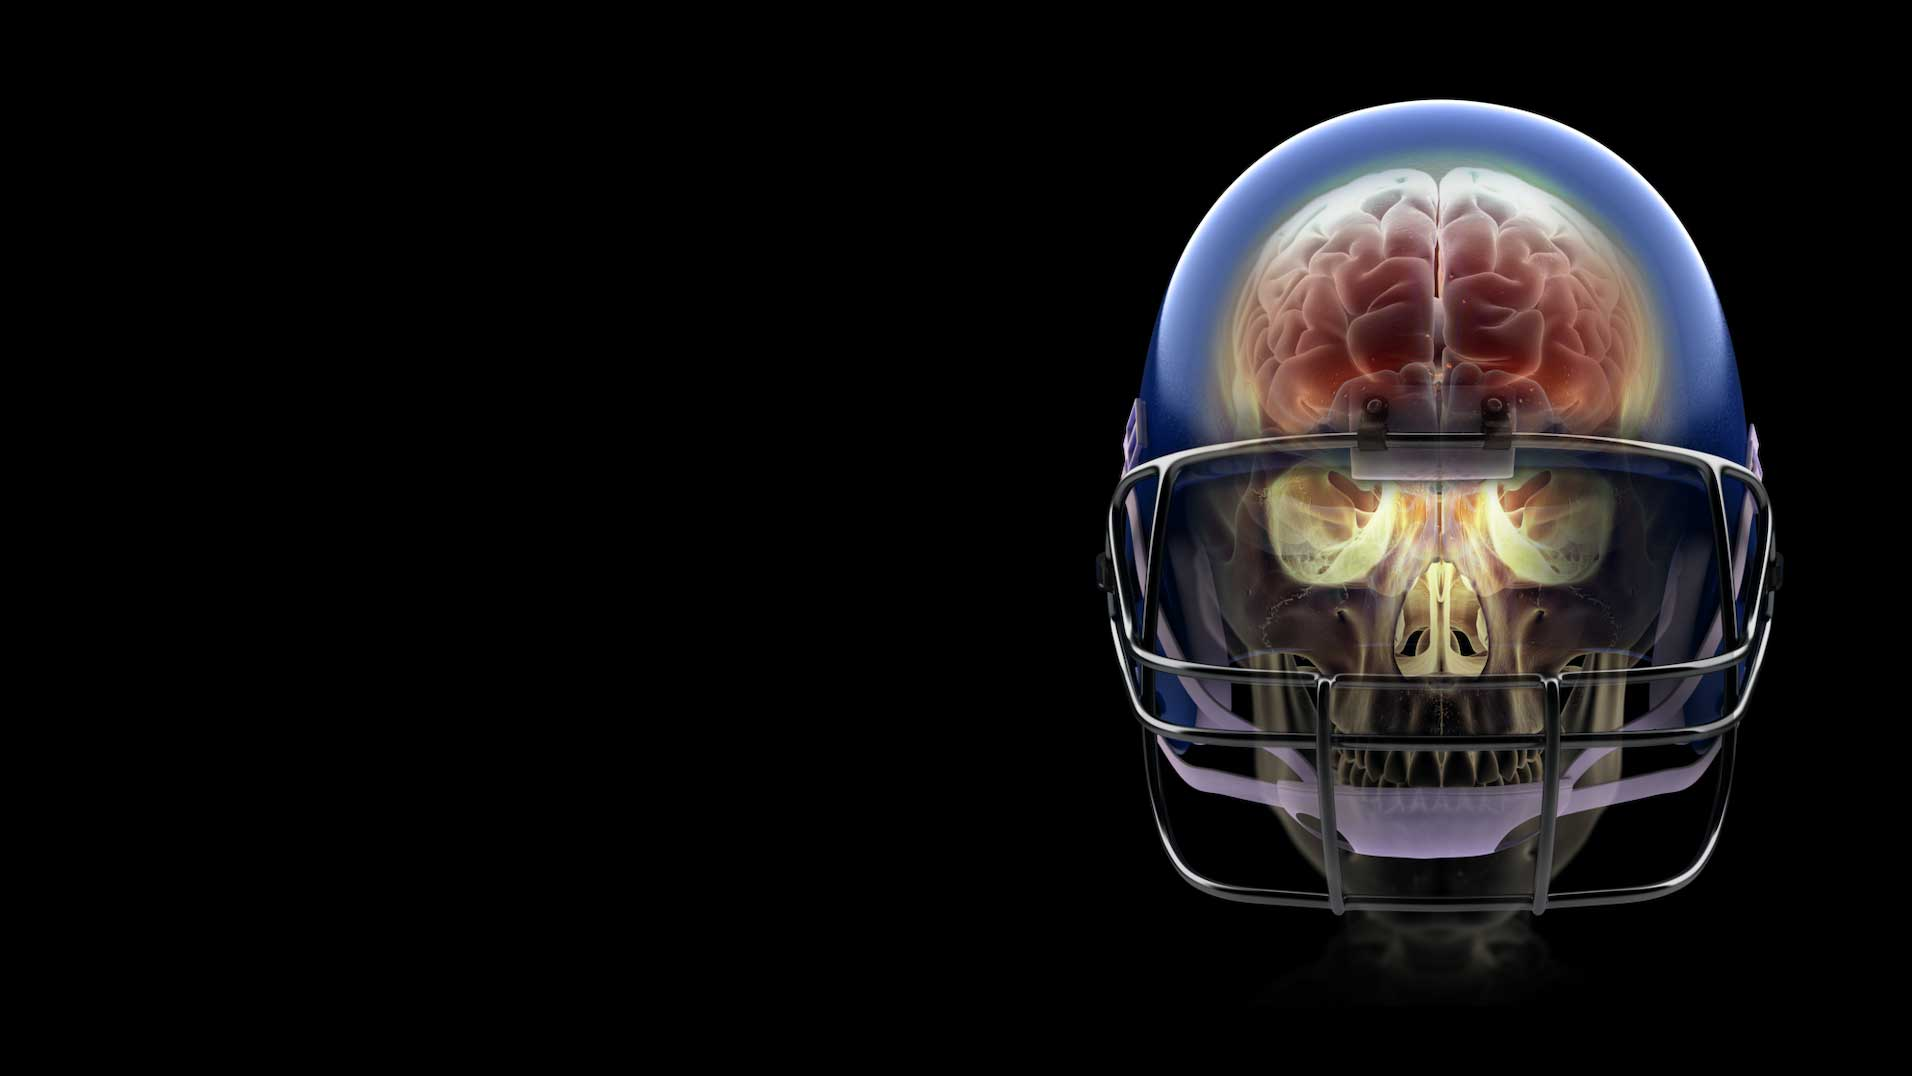 Nursing Schools In Arizona >> New techniques may detect CTE in brains of living former NFL players | ASU Now: Access ...